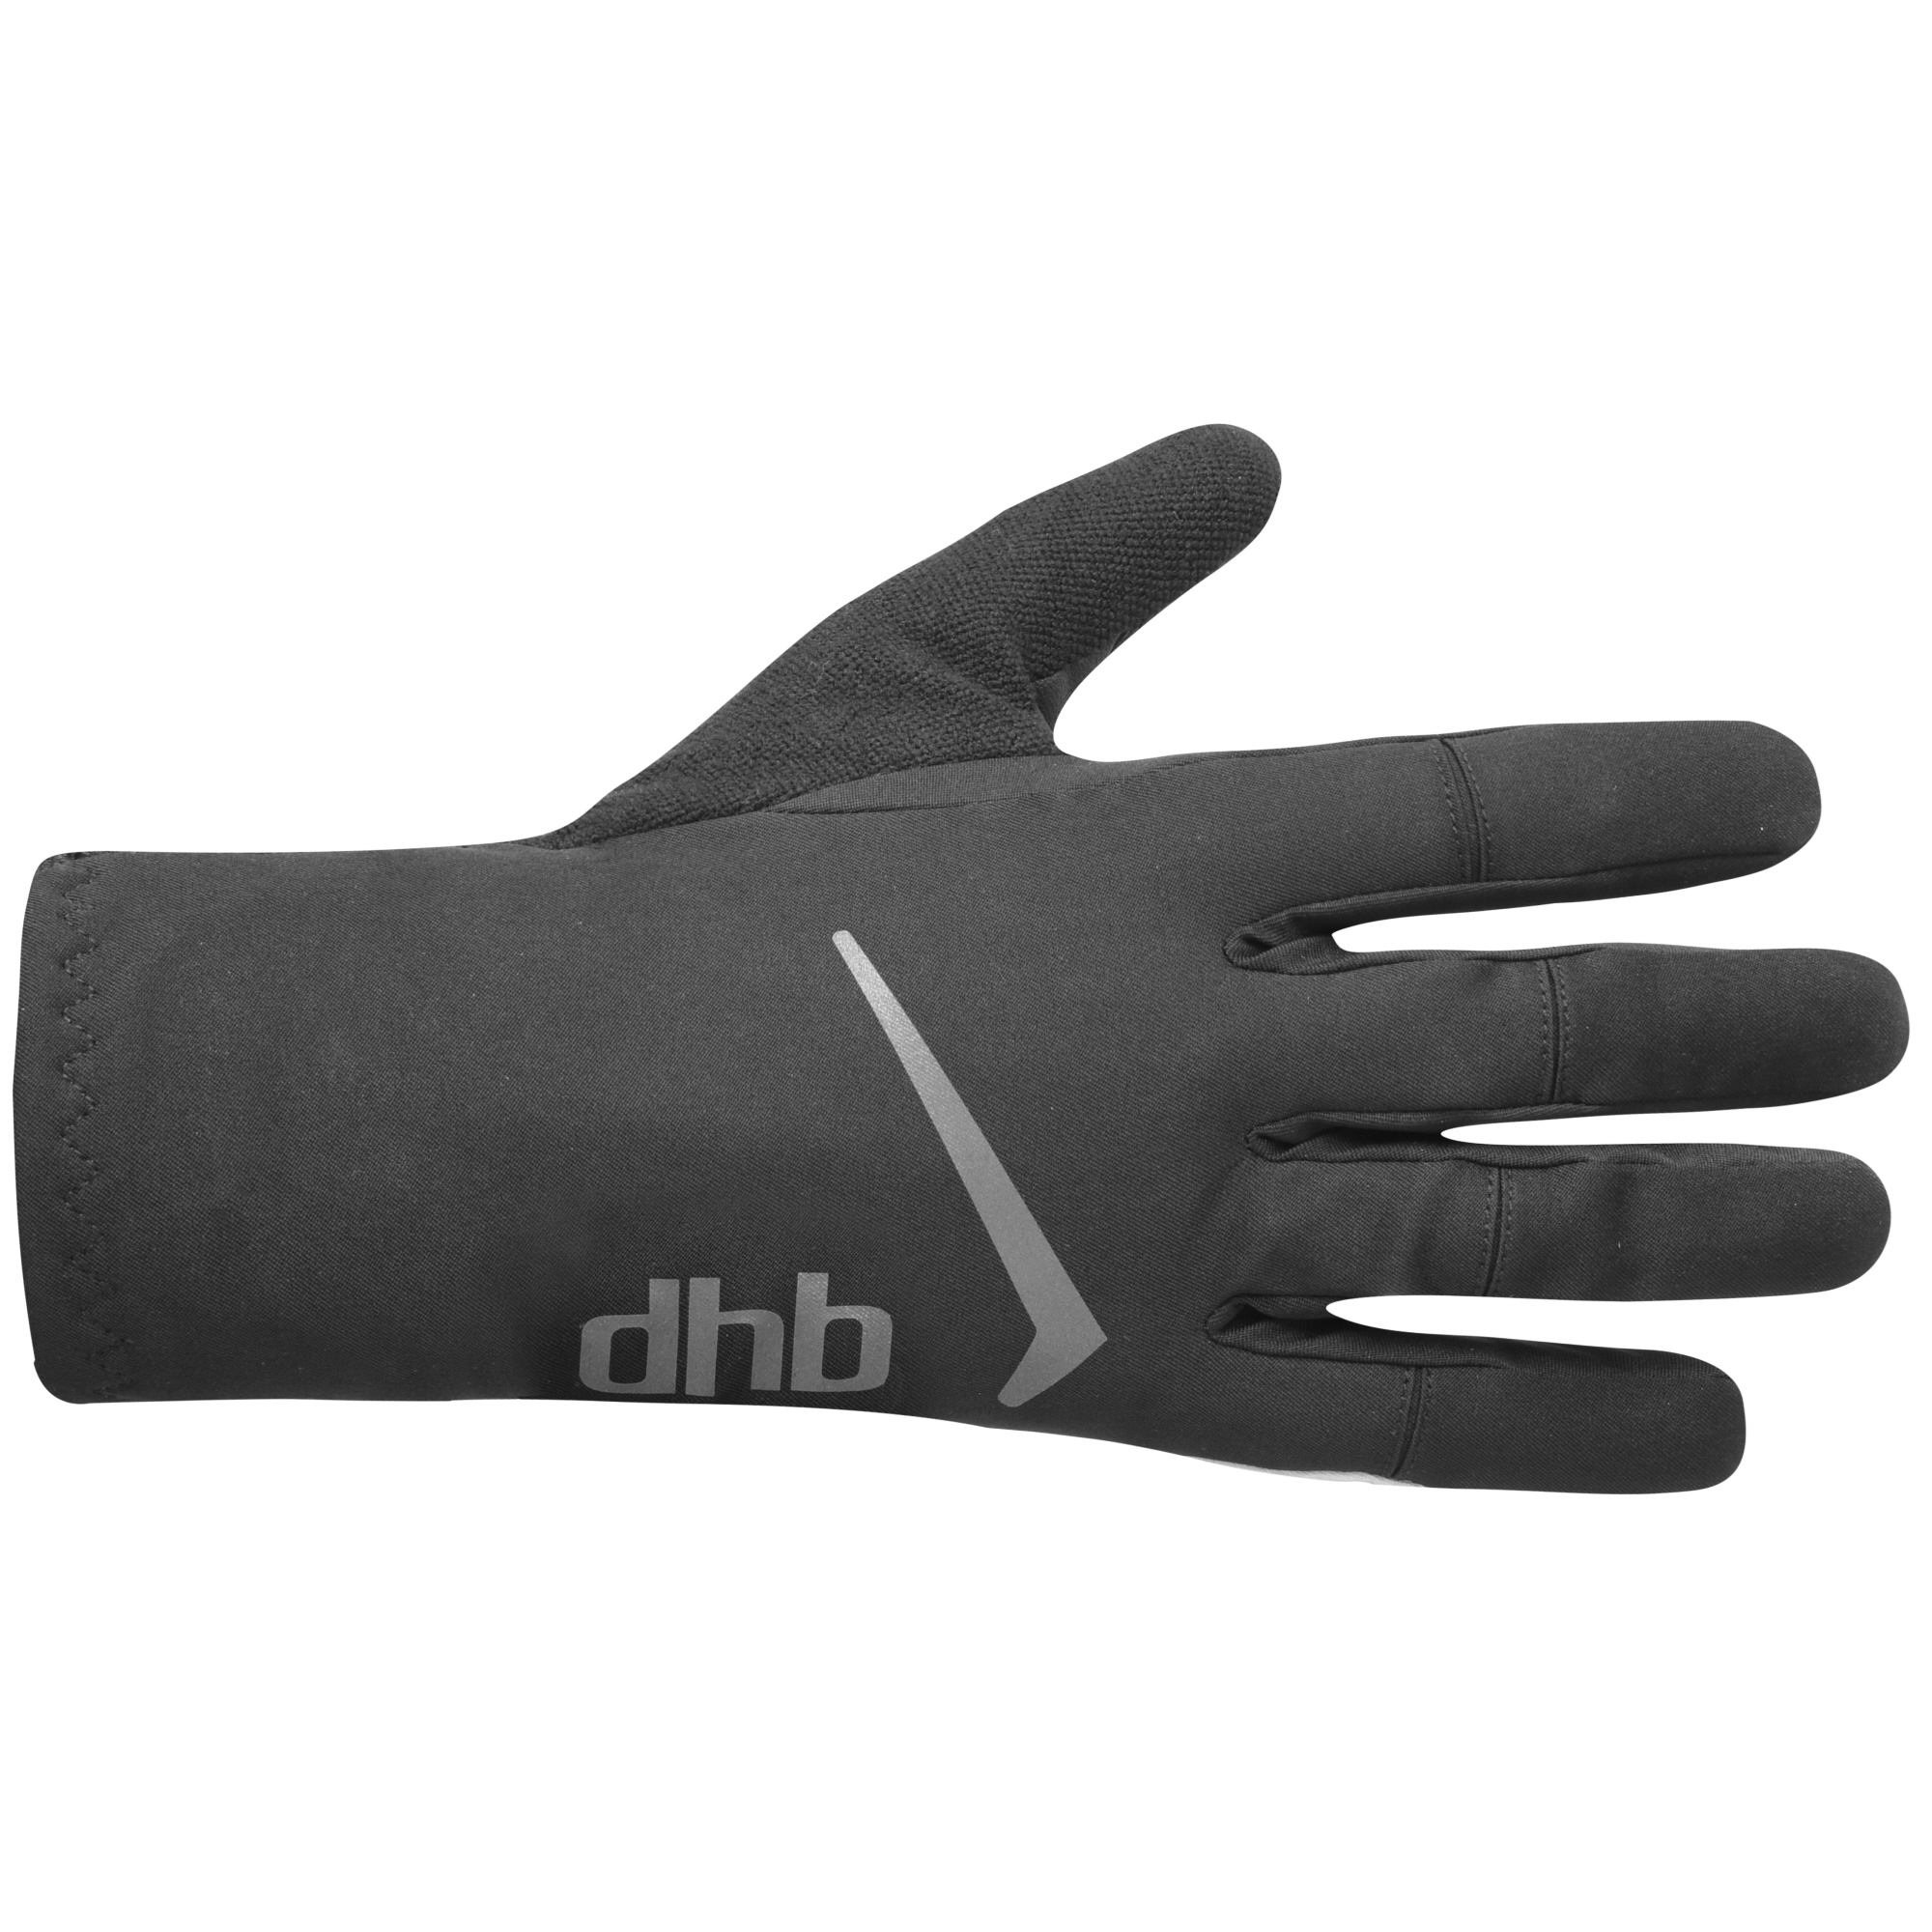 dhb Deep Winter FLT Handsker | Gloves